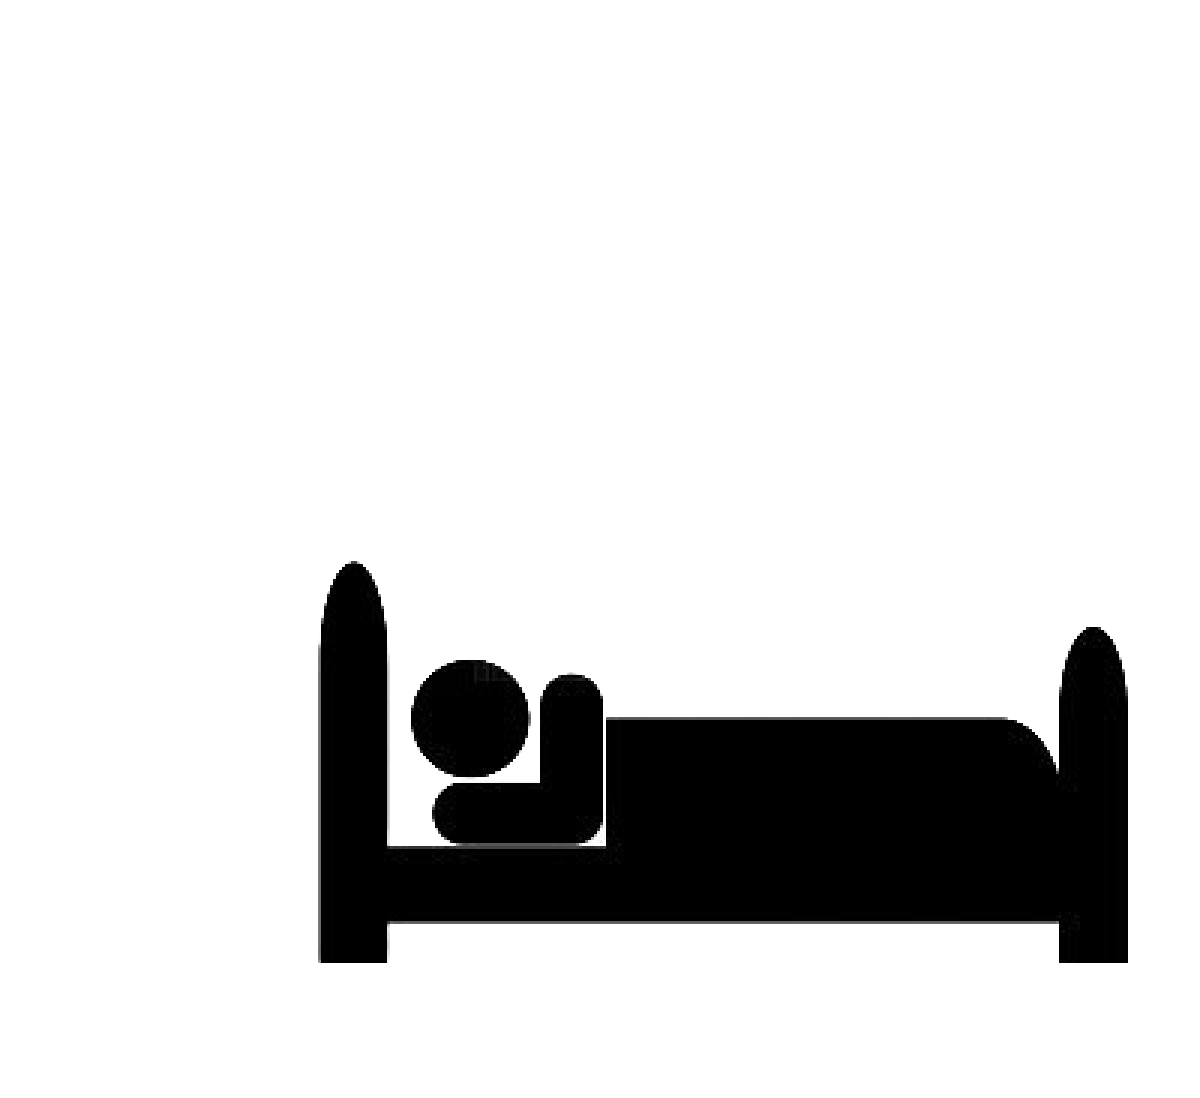 Clipart bed icon. Organize bedroom at real